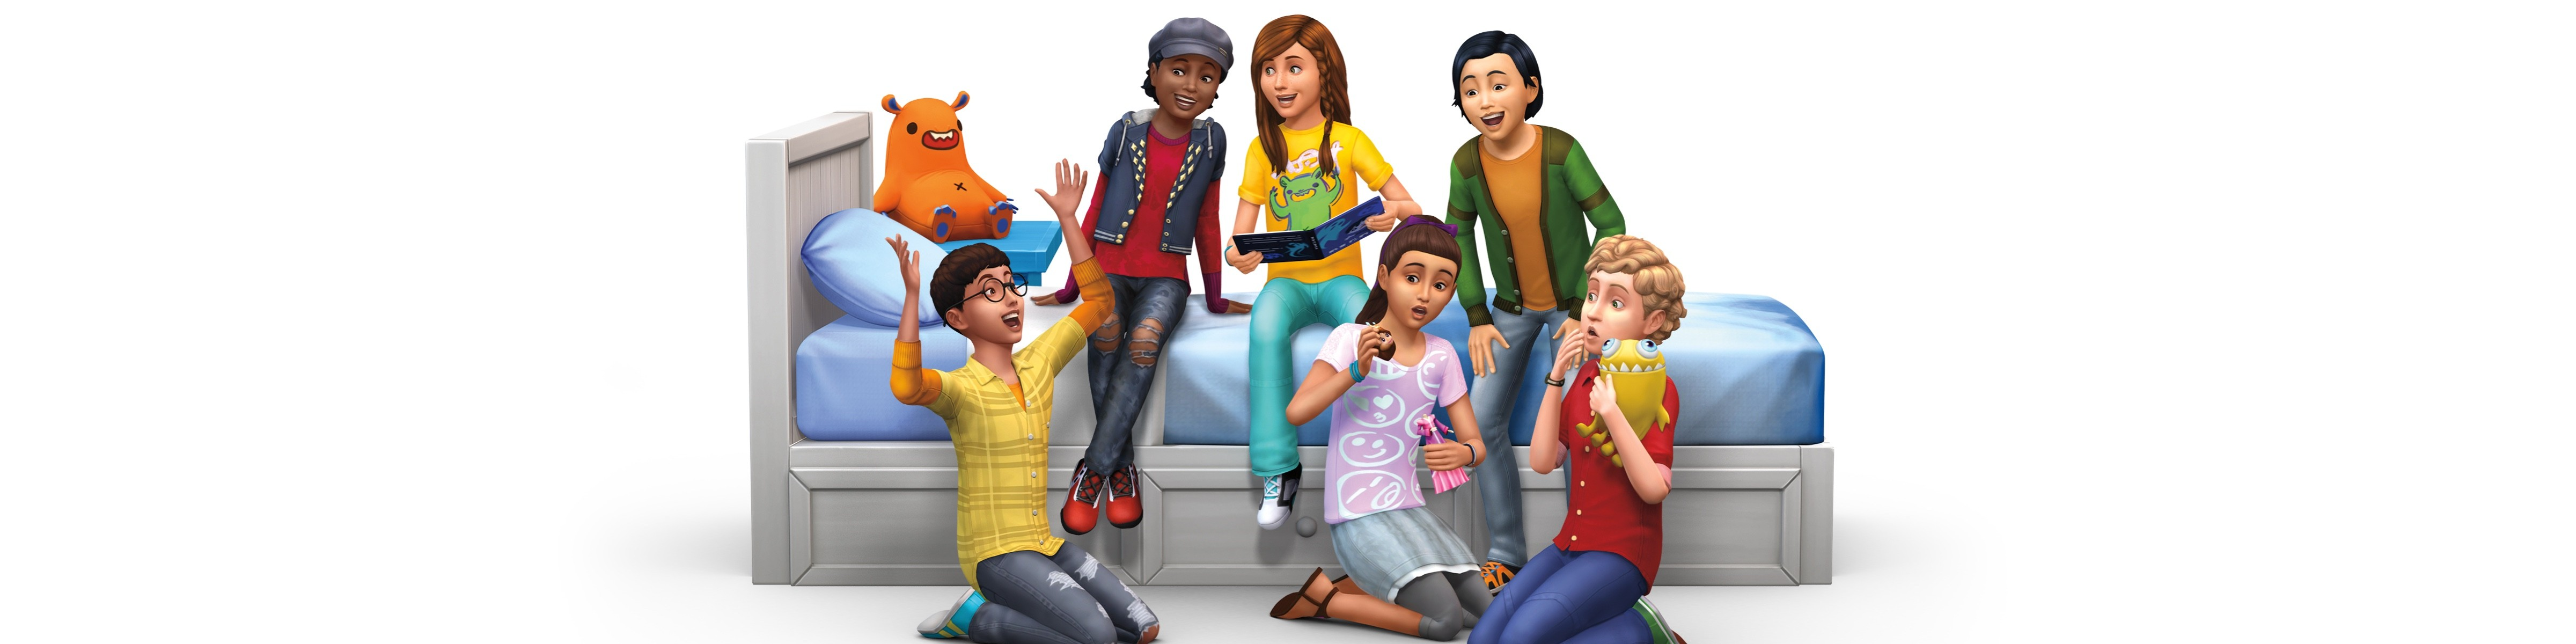 free origin account with sims 4 2016